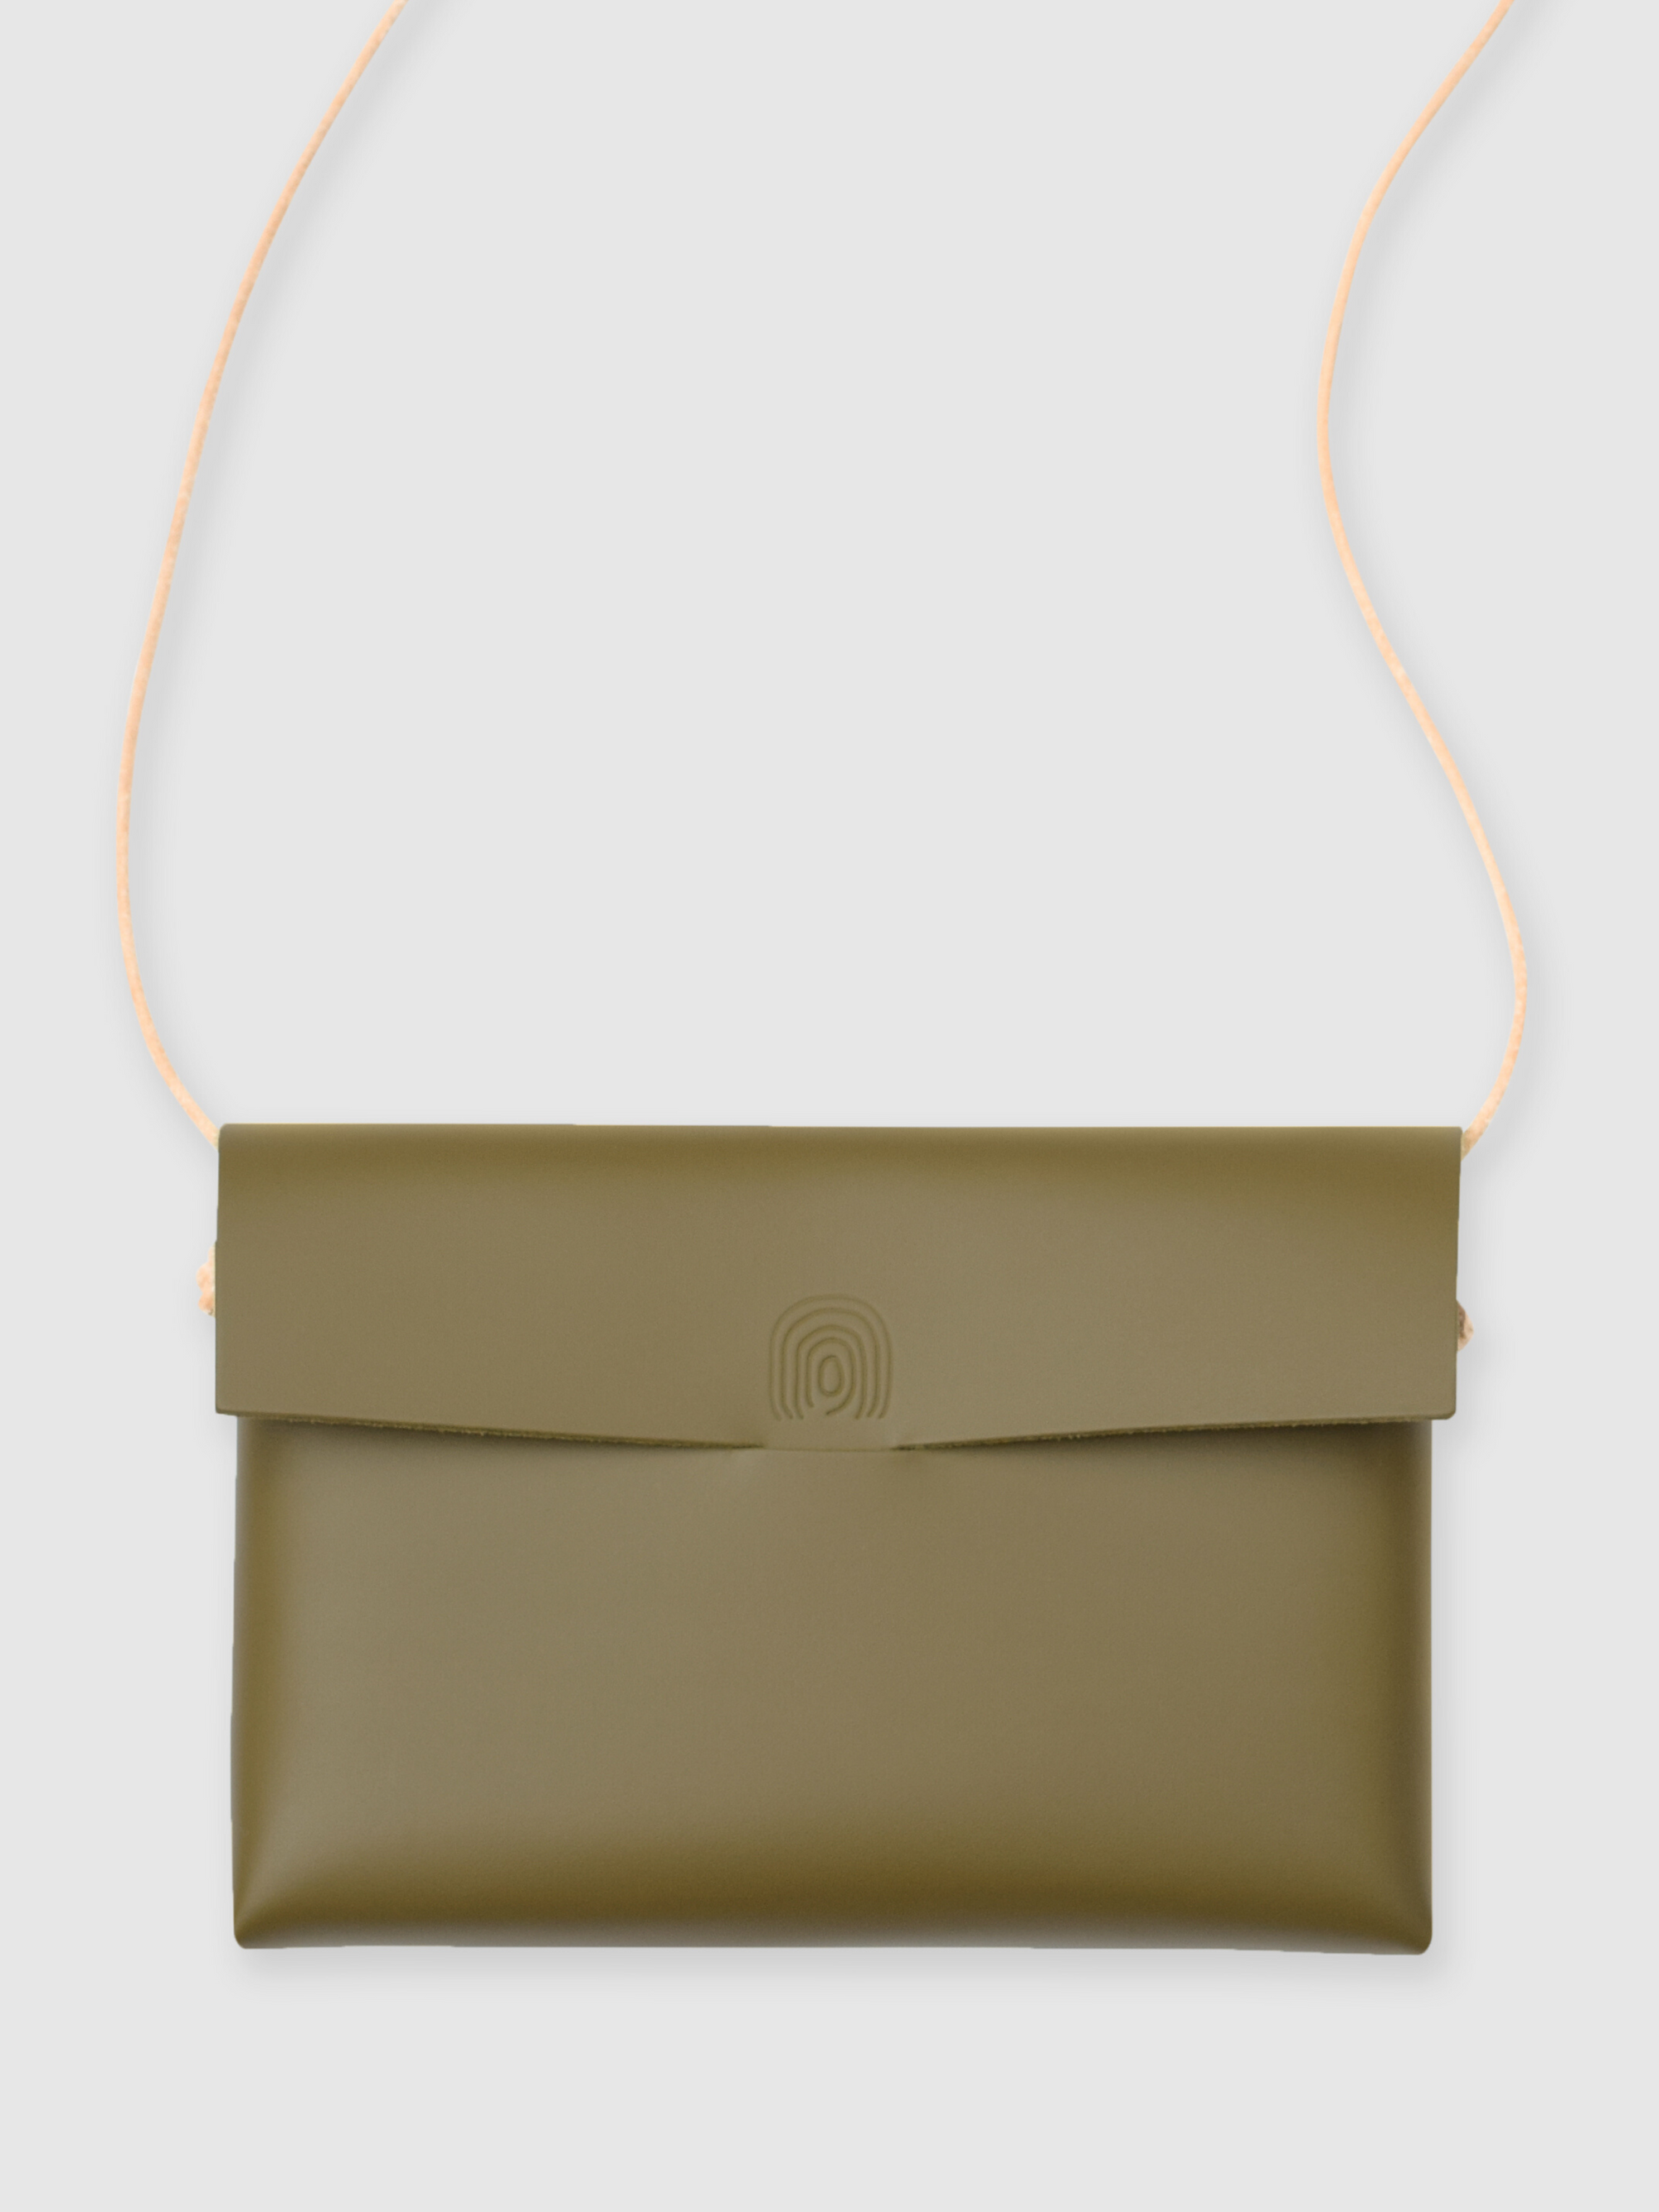 maxi case - Alfie Douglas - minimal leather bags backpacks handmade in England